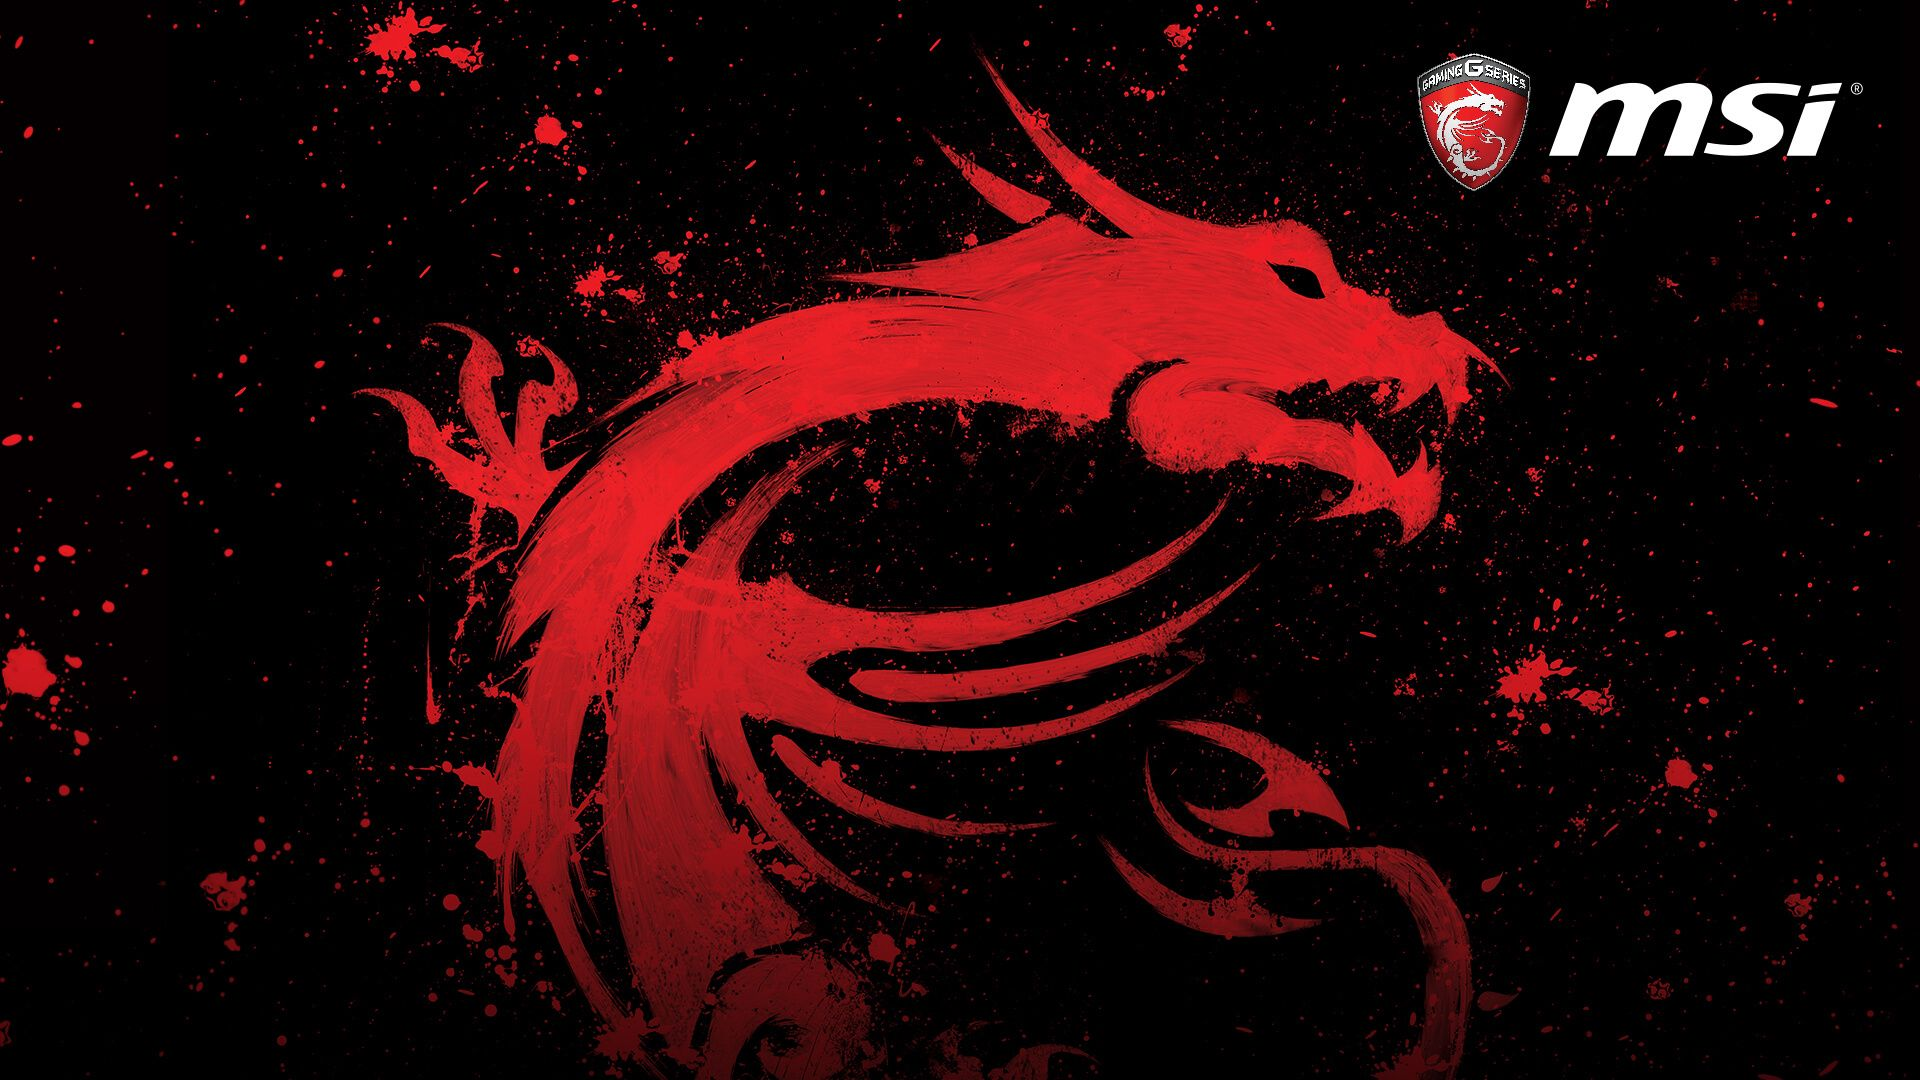 45 Msi Wallpaper For Laptops Duvar Kagidi Duvar